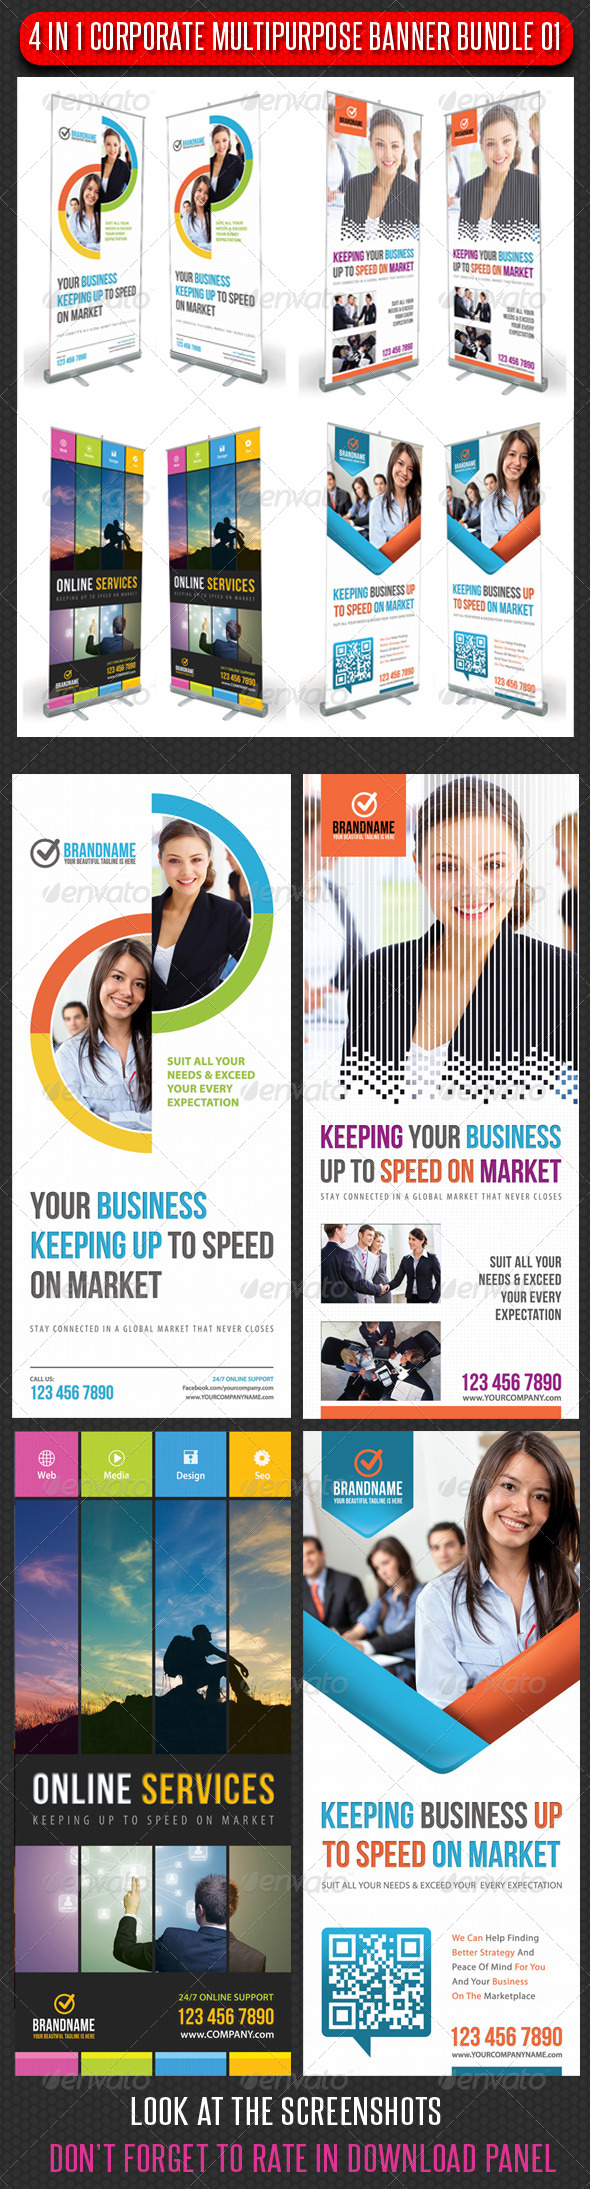 GraphicRiver 4 in 1 Corporate Multipurpose Banner Bundle 01 6462960